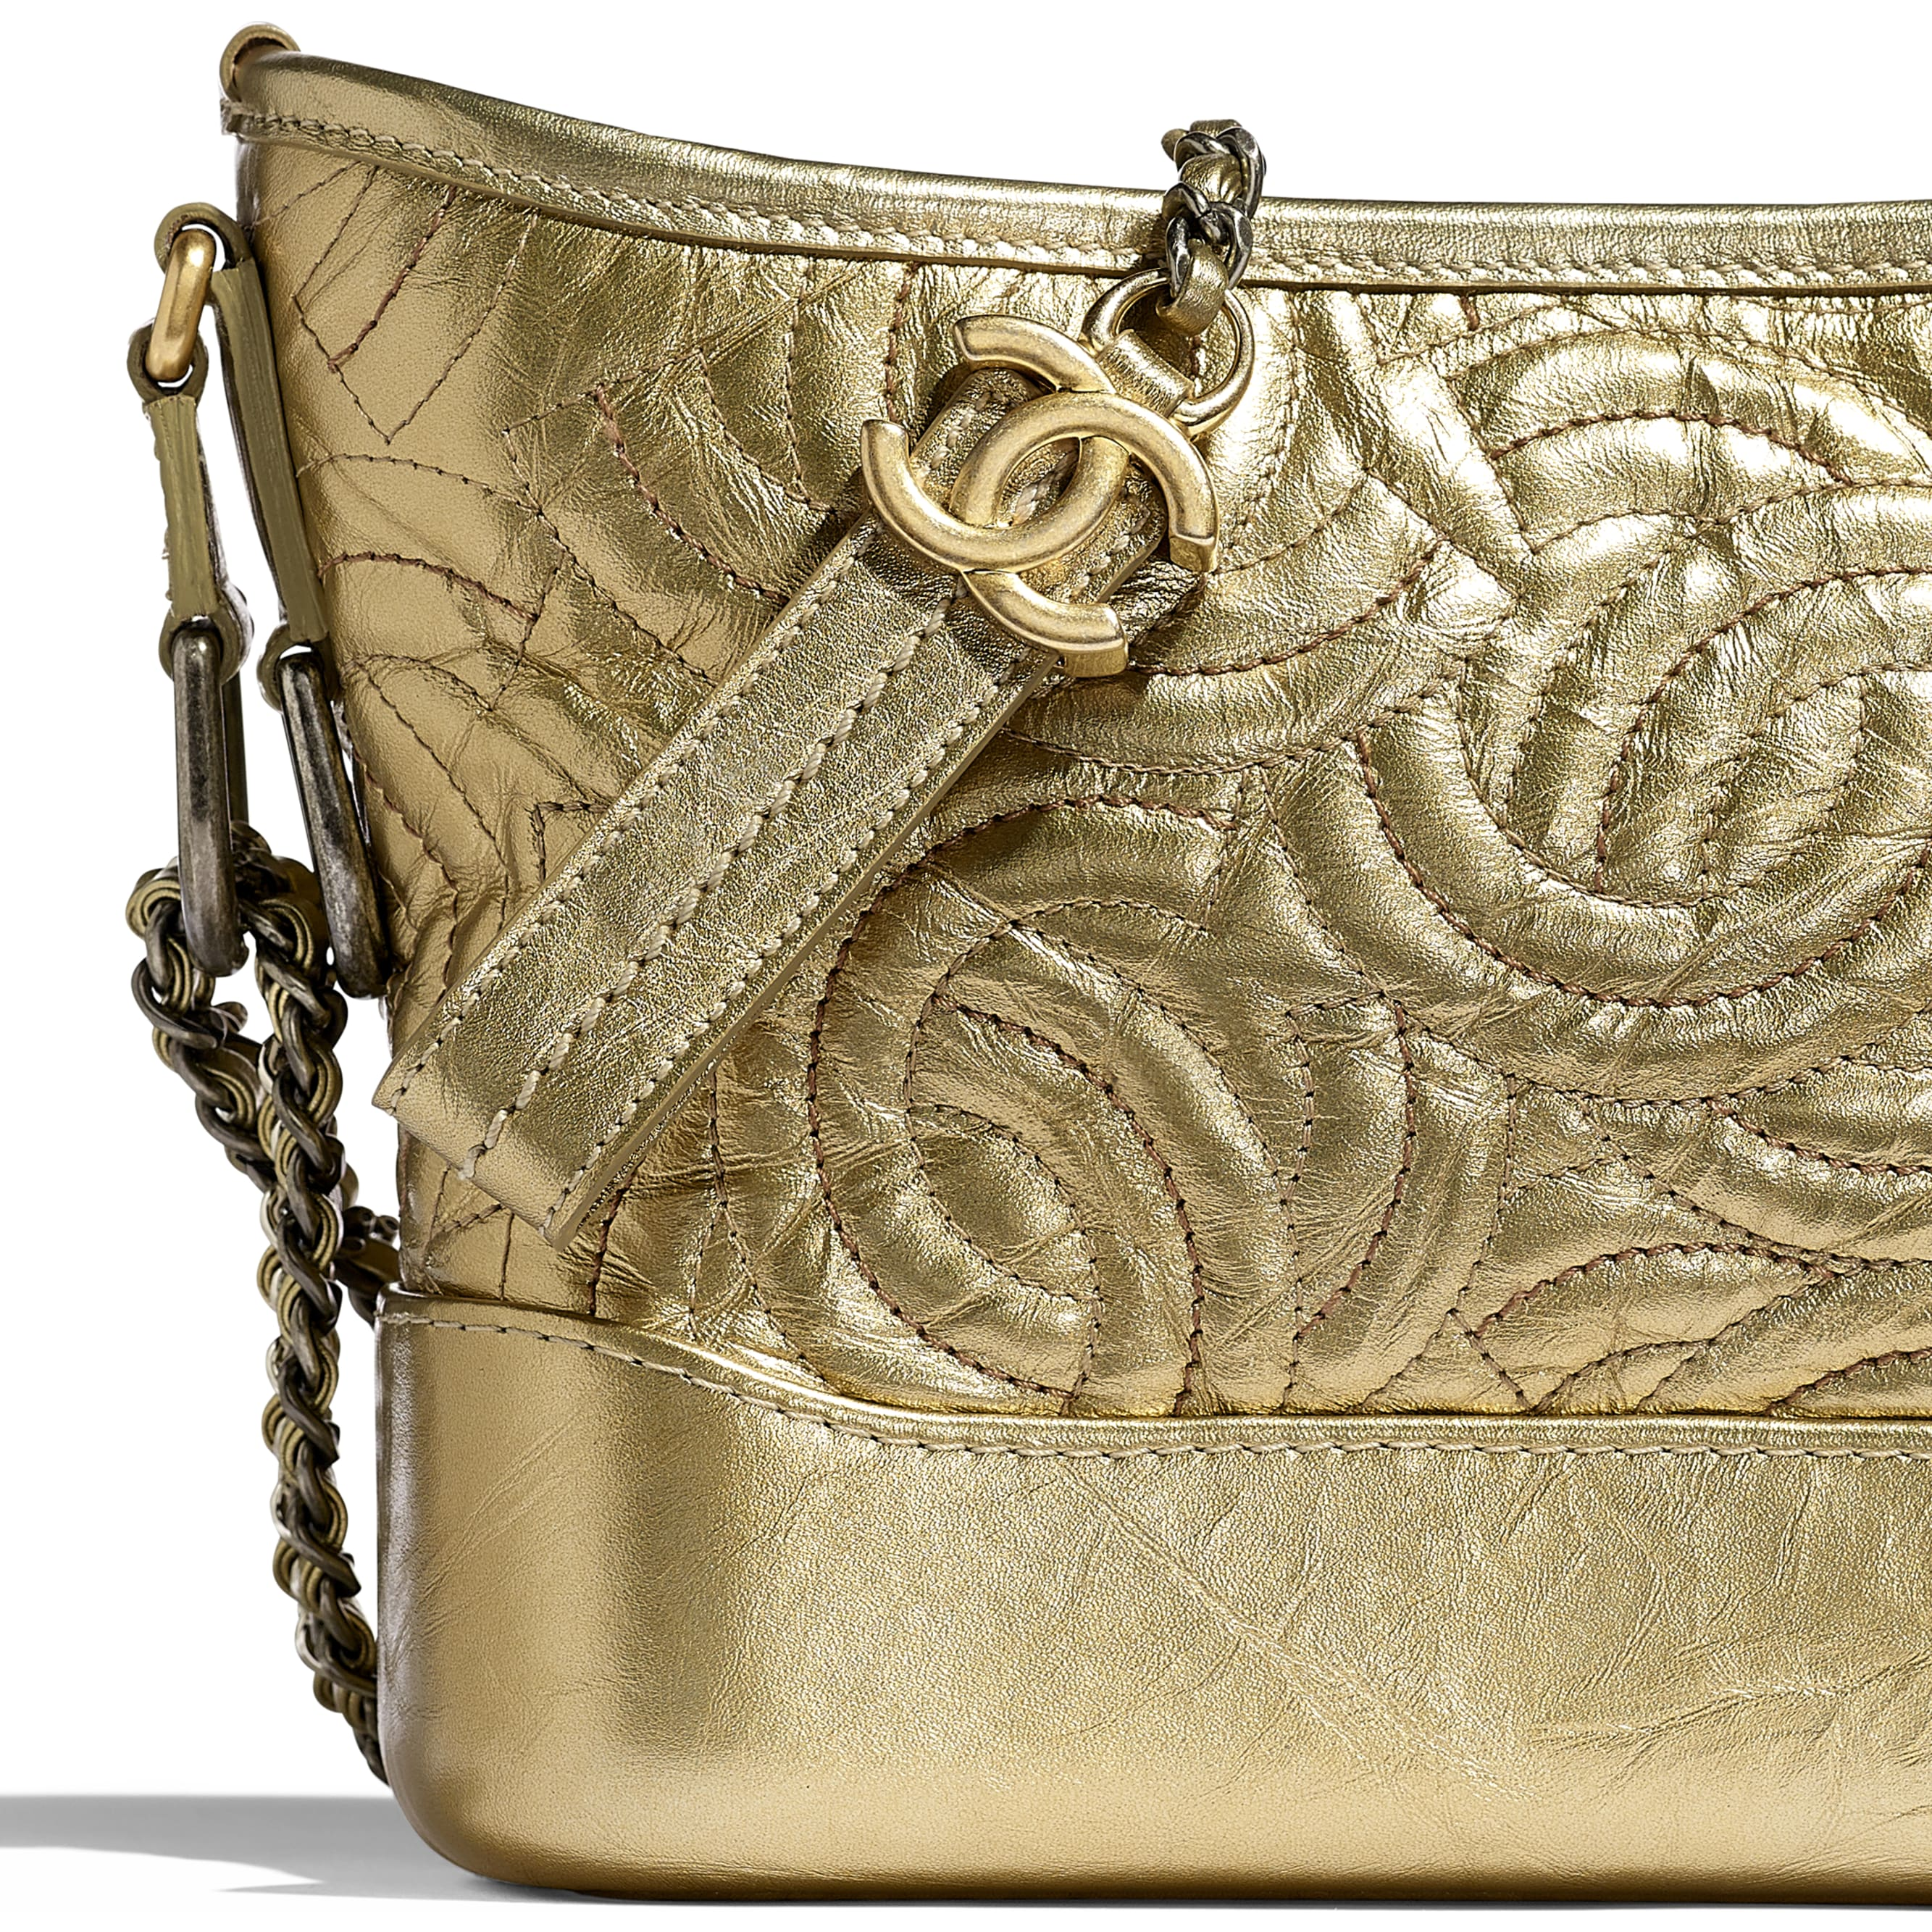 CHANEL'S GABRIELLE Small Hobo Bag - Gold - Calfskin, Silver-Tone & Gold-Tone Metal - CHANEL - Extra view - see standard sized version